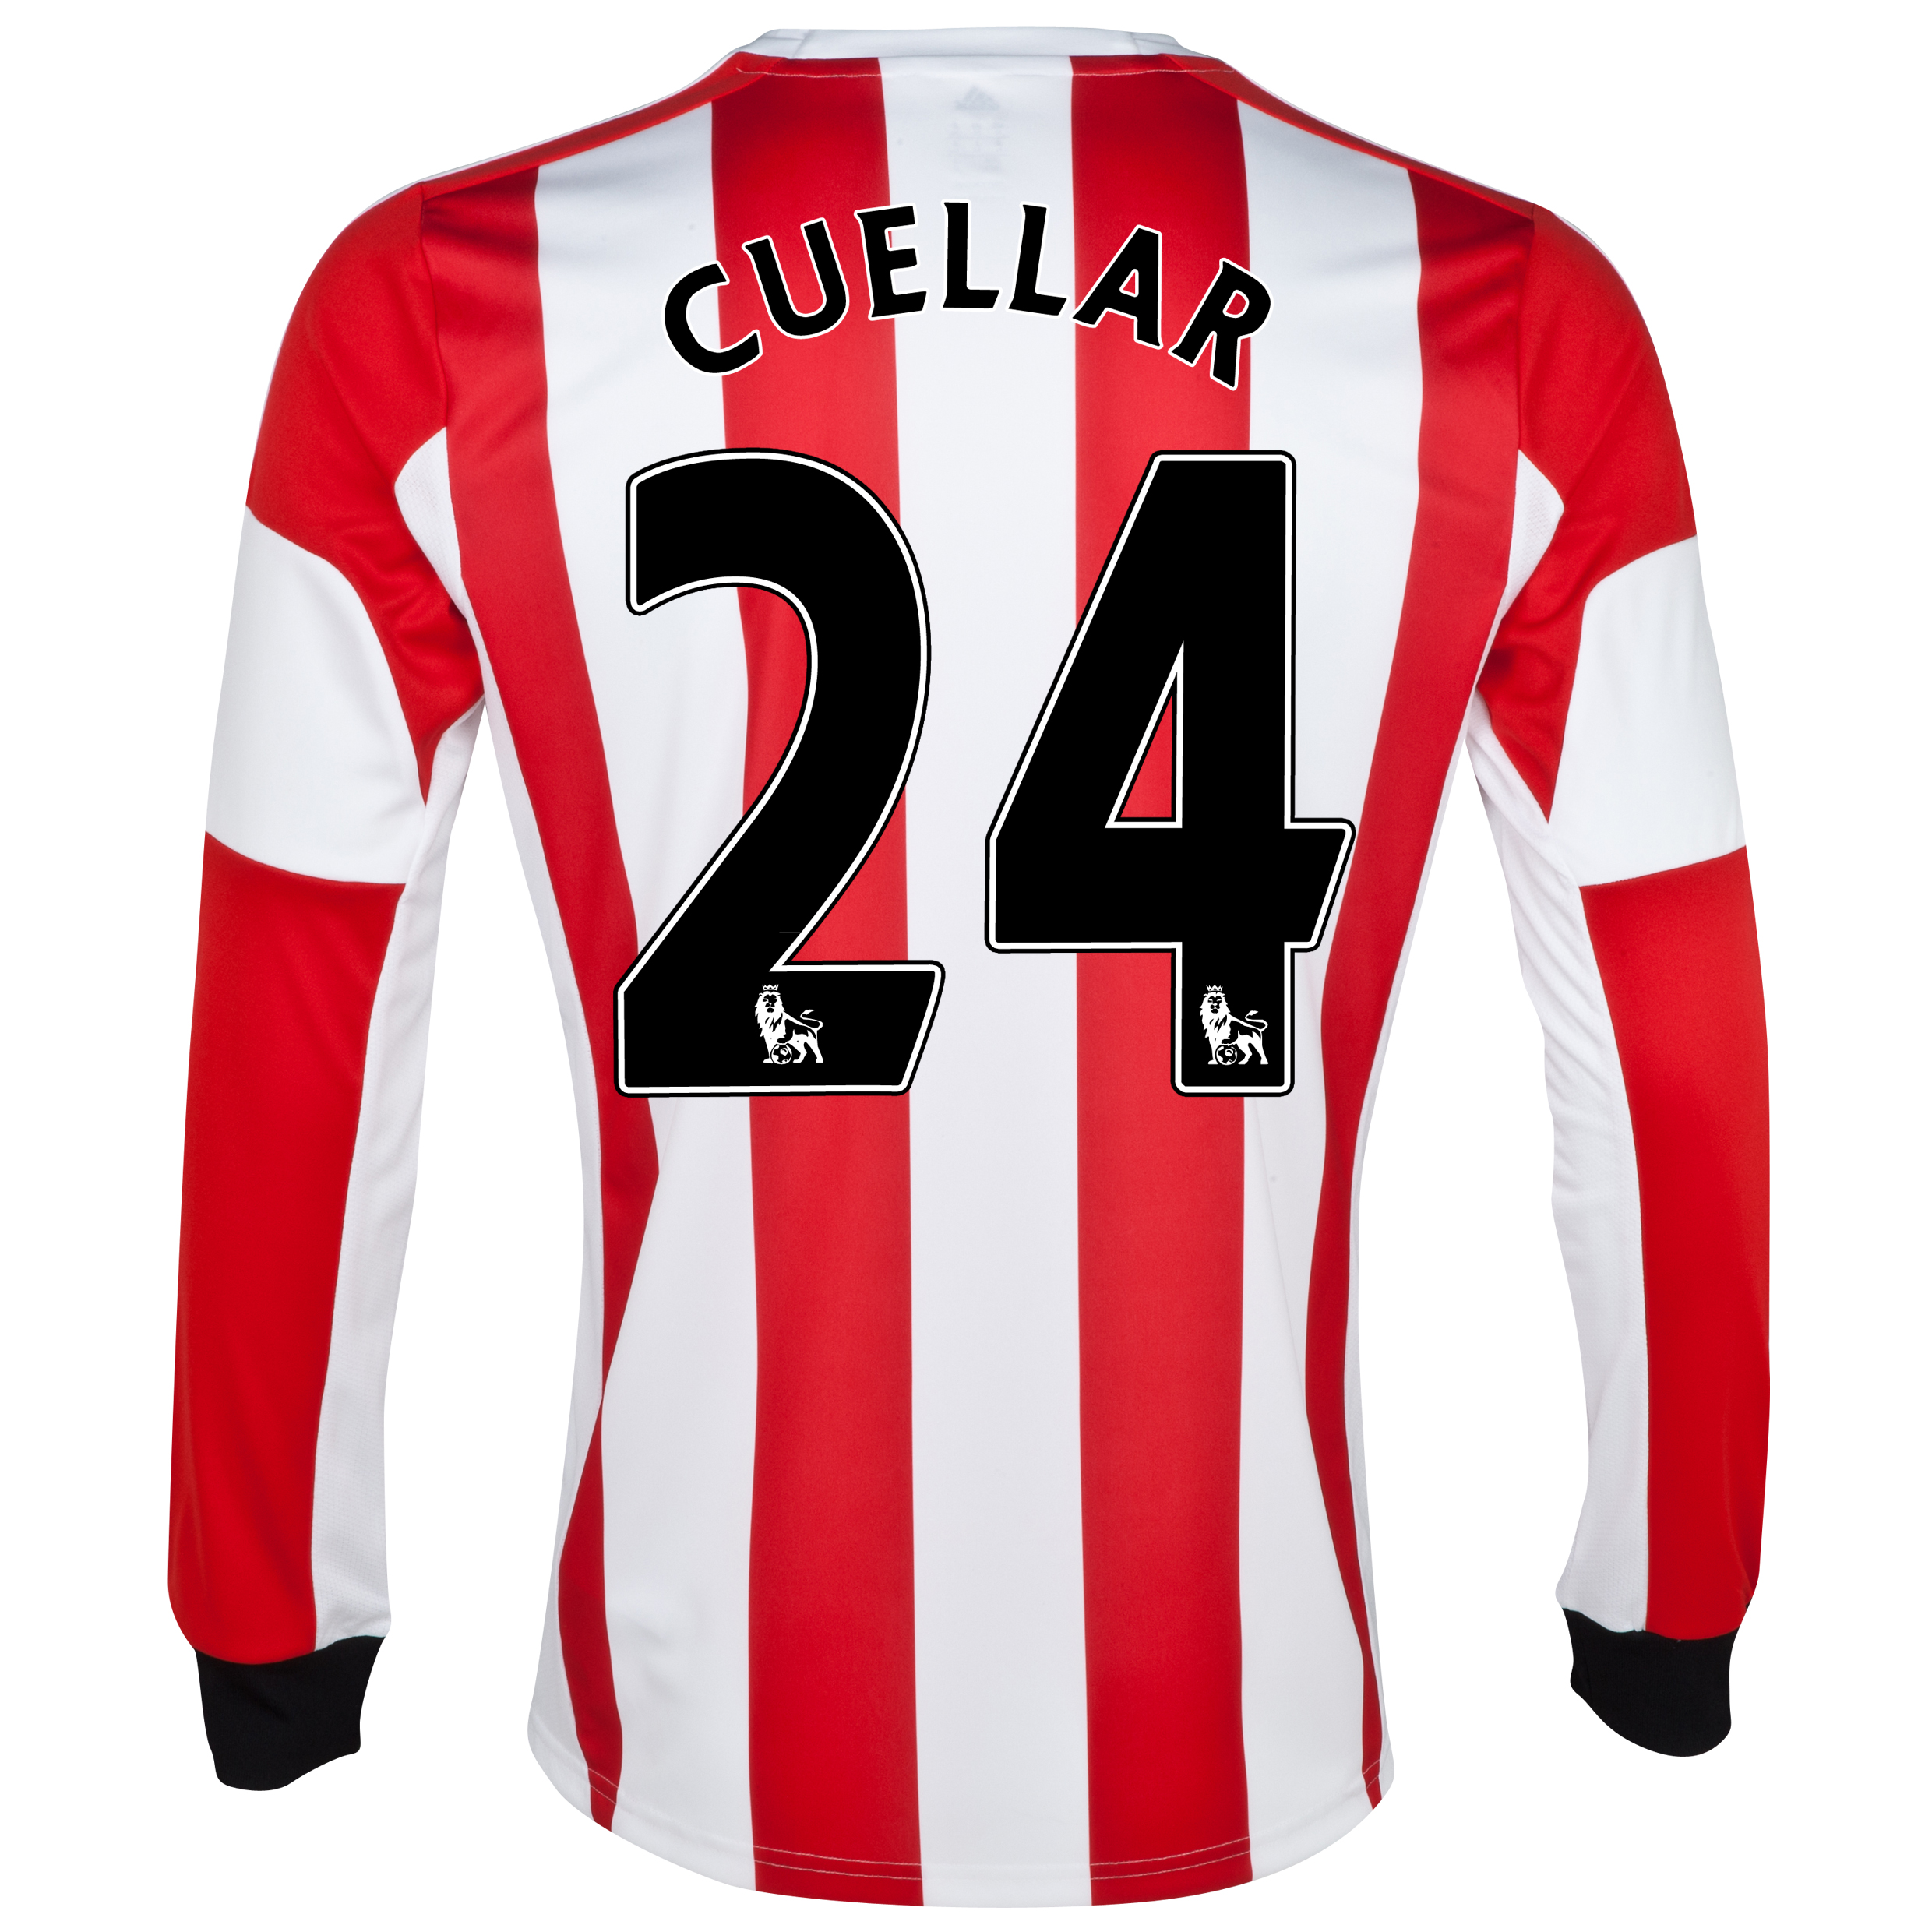 Sunderland Home Shirt 2013/14 - Long Sleeved  with Cuellar 24 printing